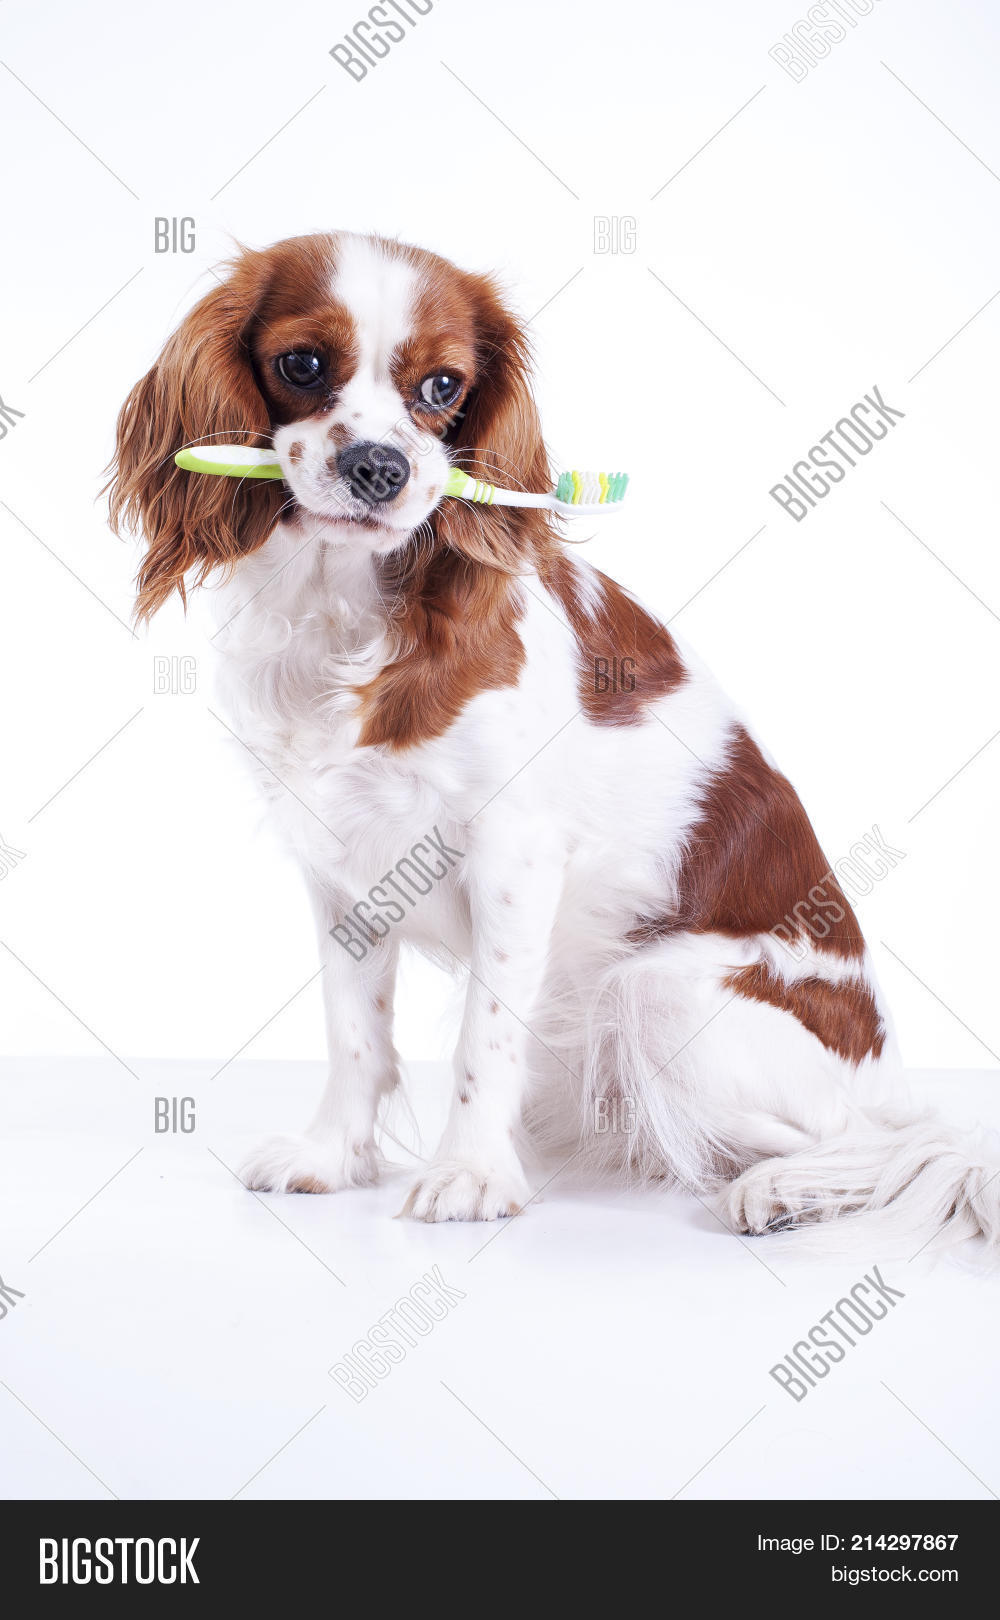 Download King Charles Canine Adorable Dog - 214297867  Best Photo Reference_615245  .jpg